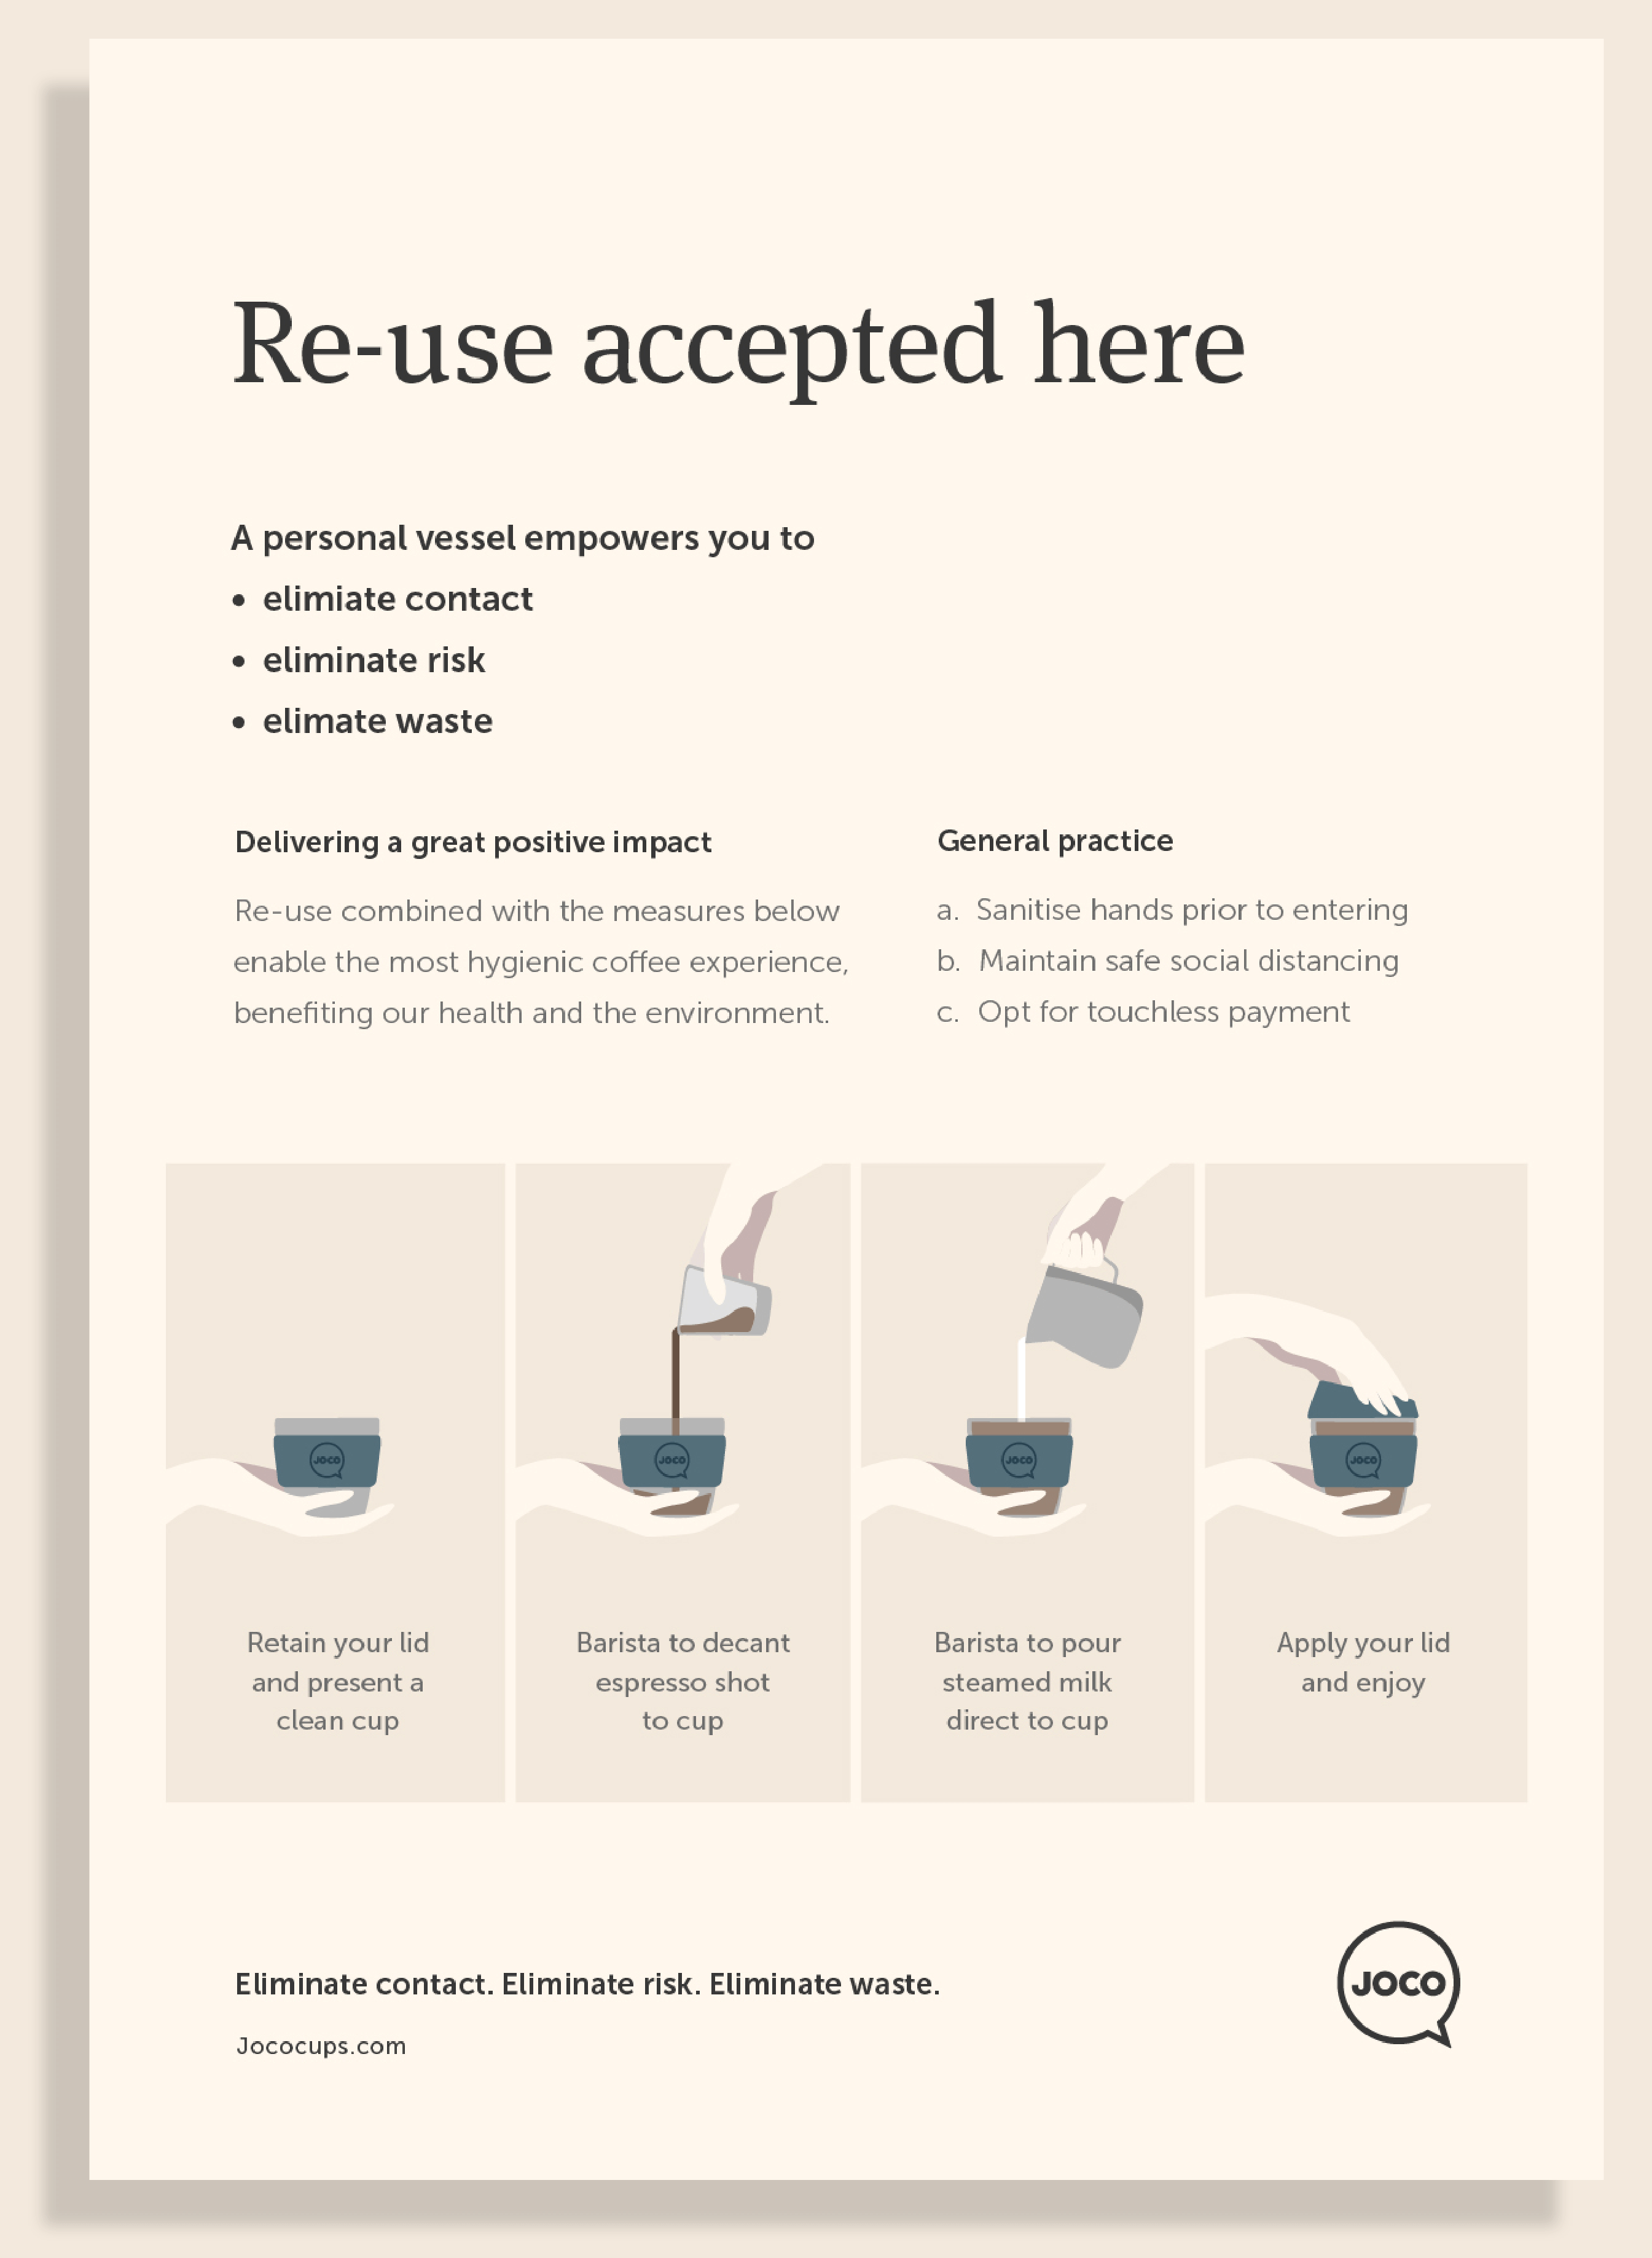 Re-use accepted here